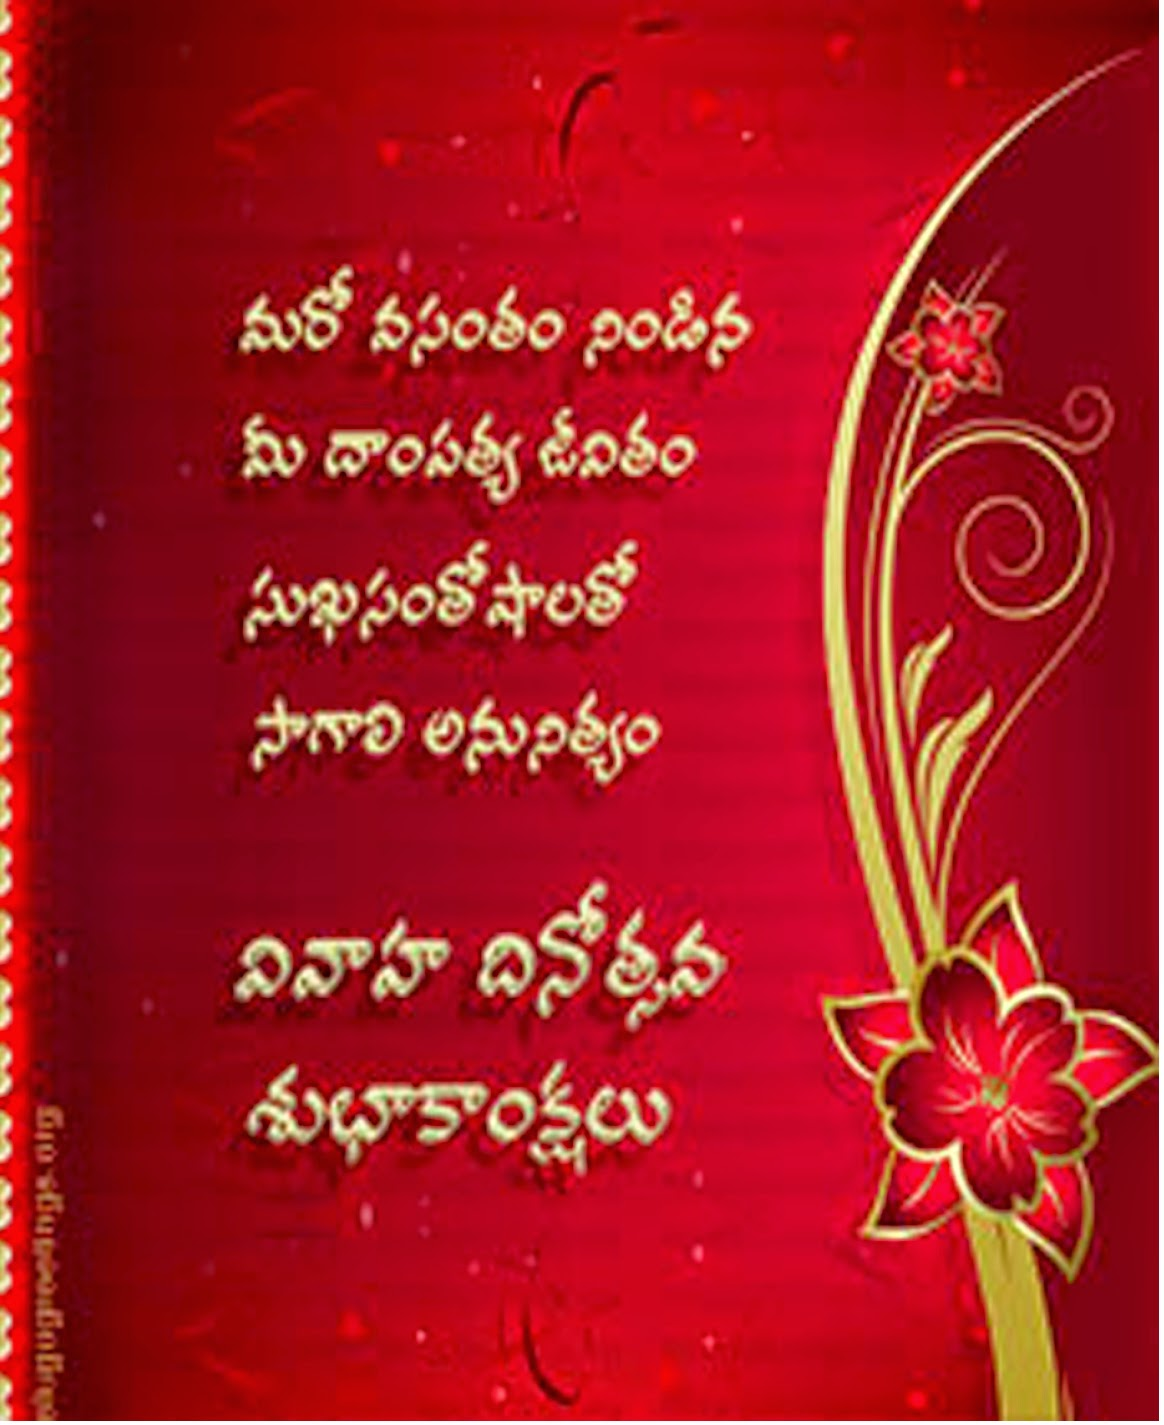 Marriage day greetings in telugu free download legendary quotes marriage day greetings in telugu with beautiful poetry kristyandbryce Images